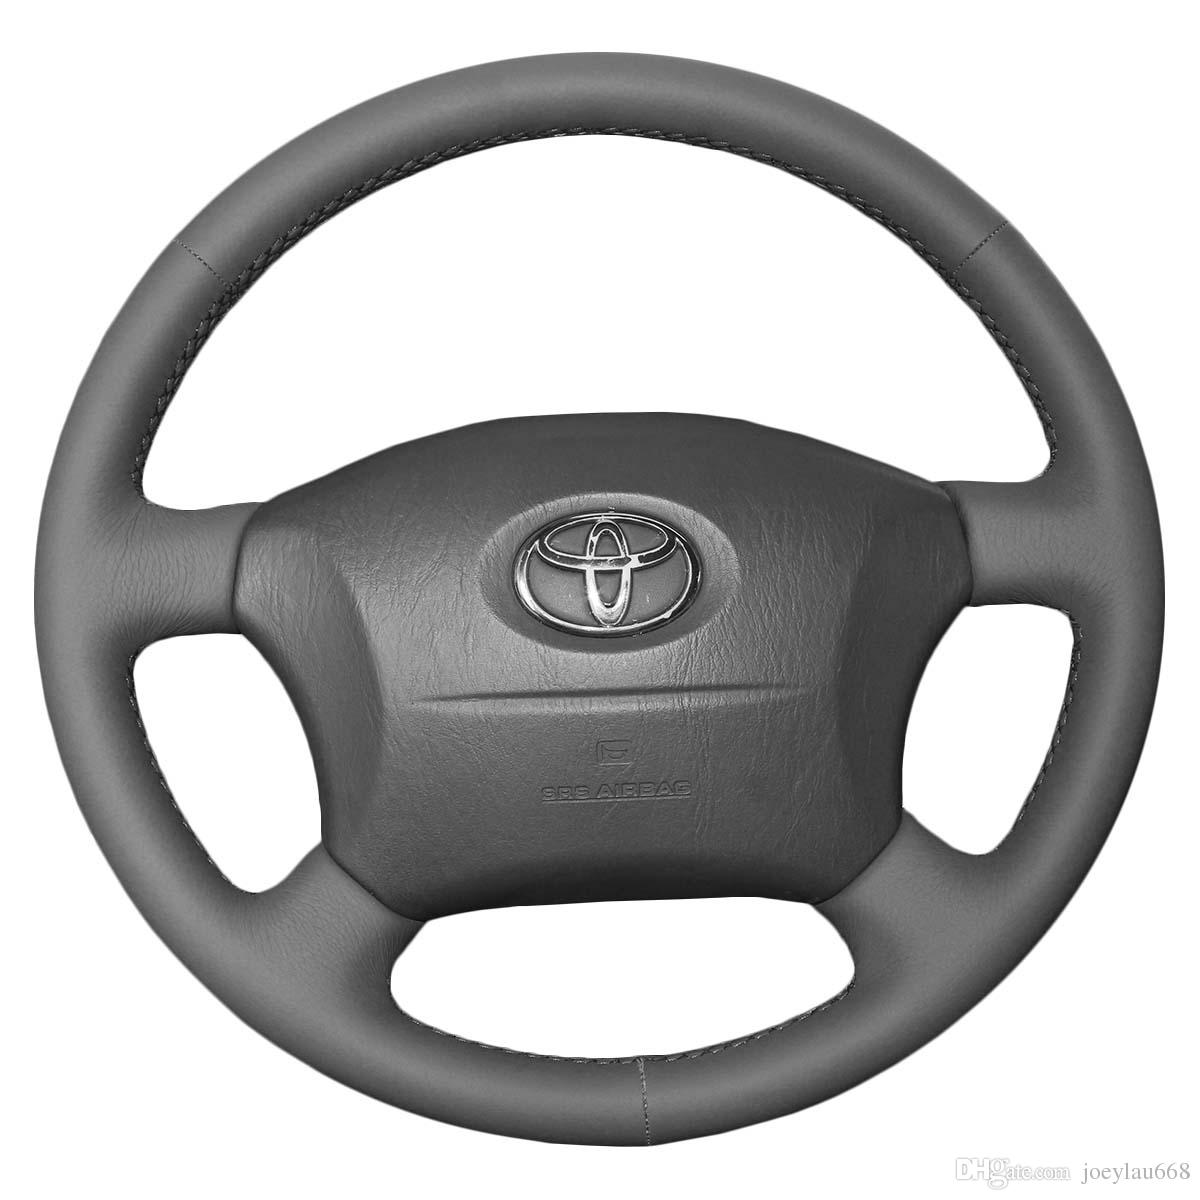 hight resolution of steering wheel covers case for toyota land cruiser prado old models genuine leather diy hand stitch car styling interior decoration go kart steering wheel